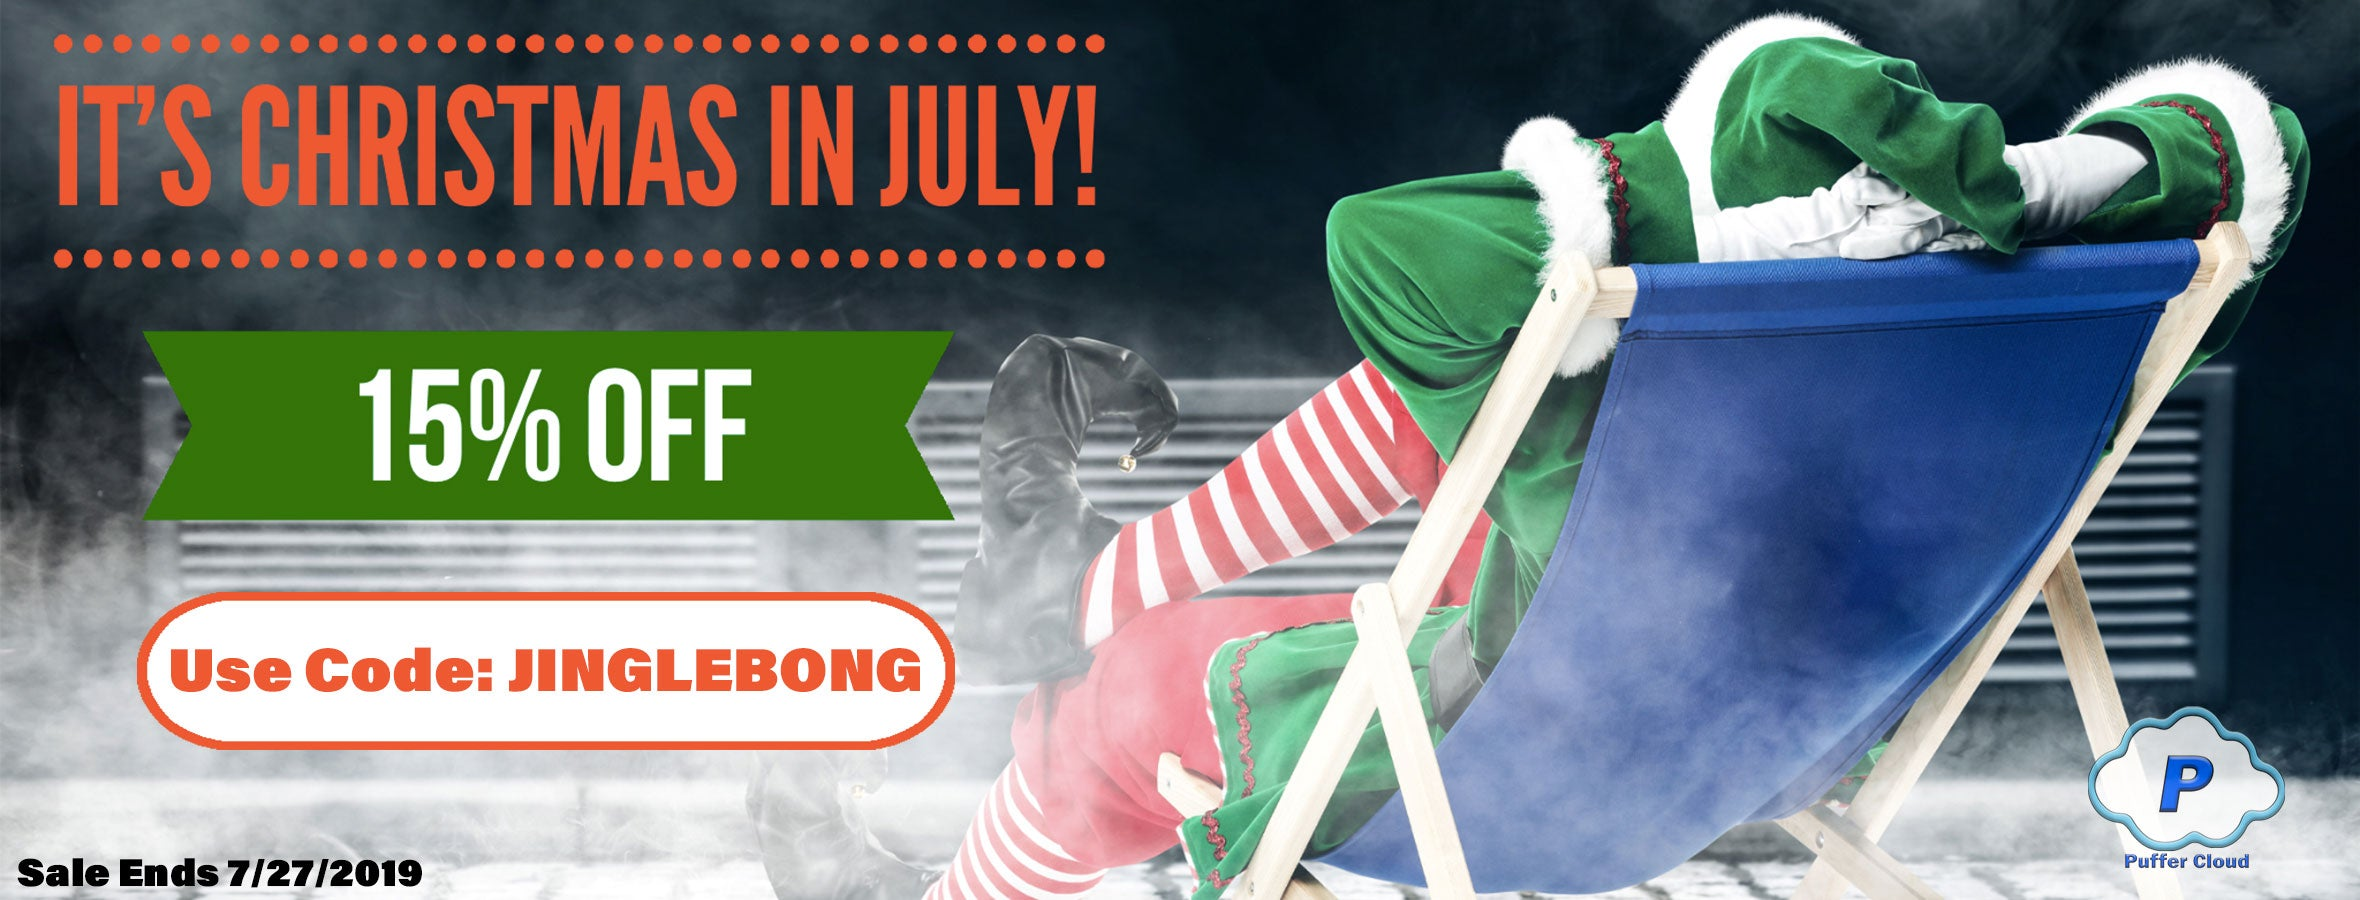 Christmas In July At Puffer Cloud The World's Best Online Smoke Shop